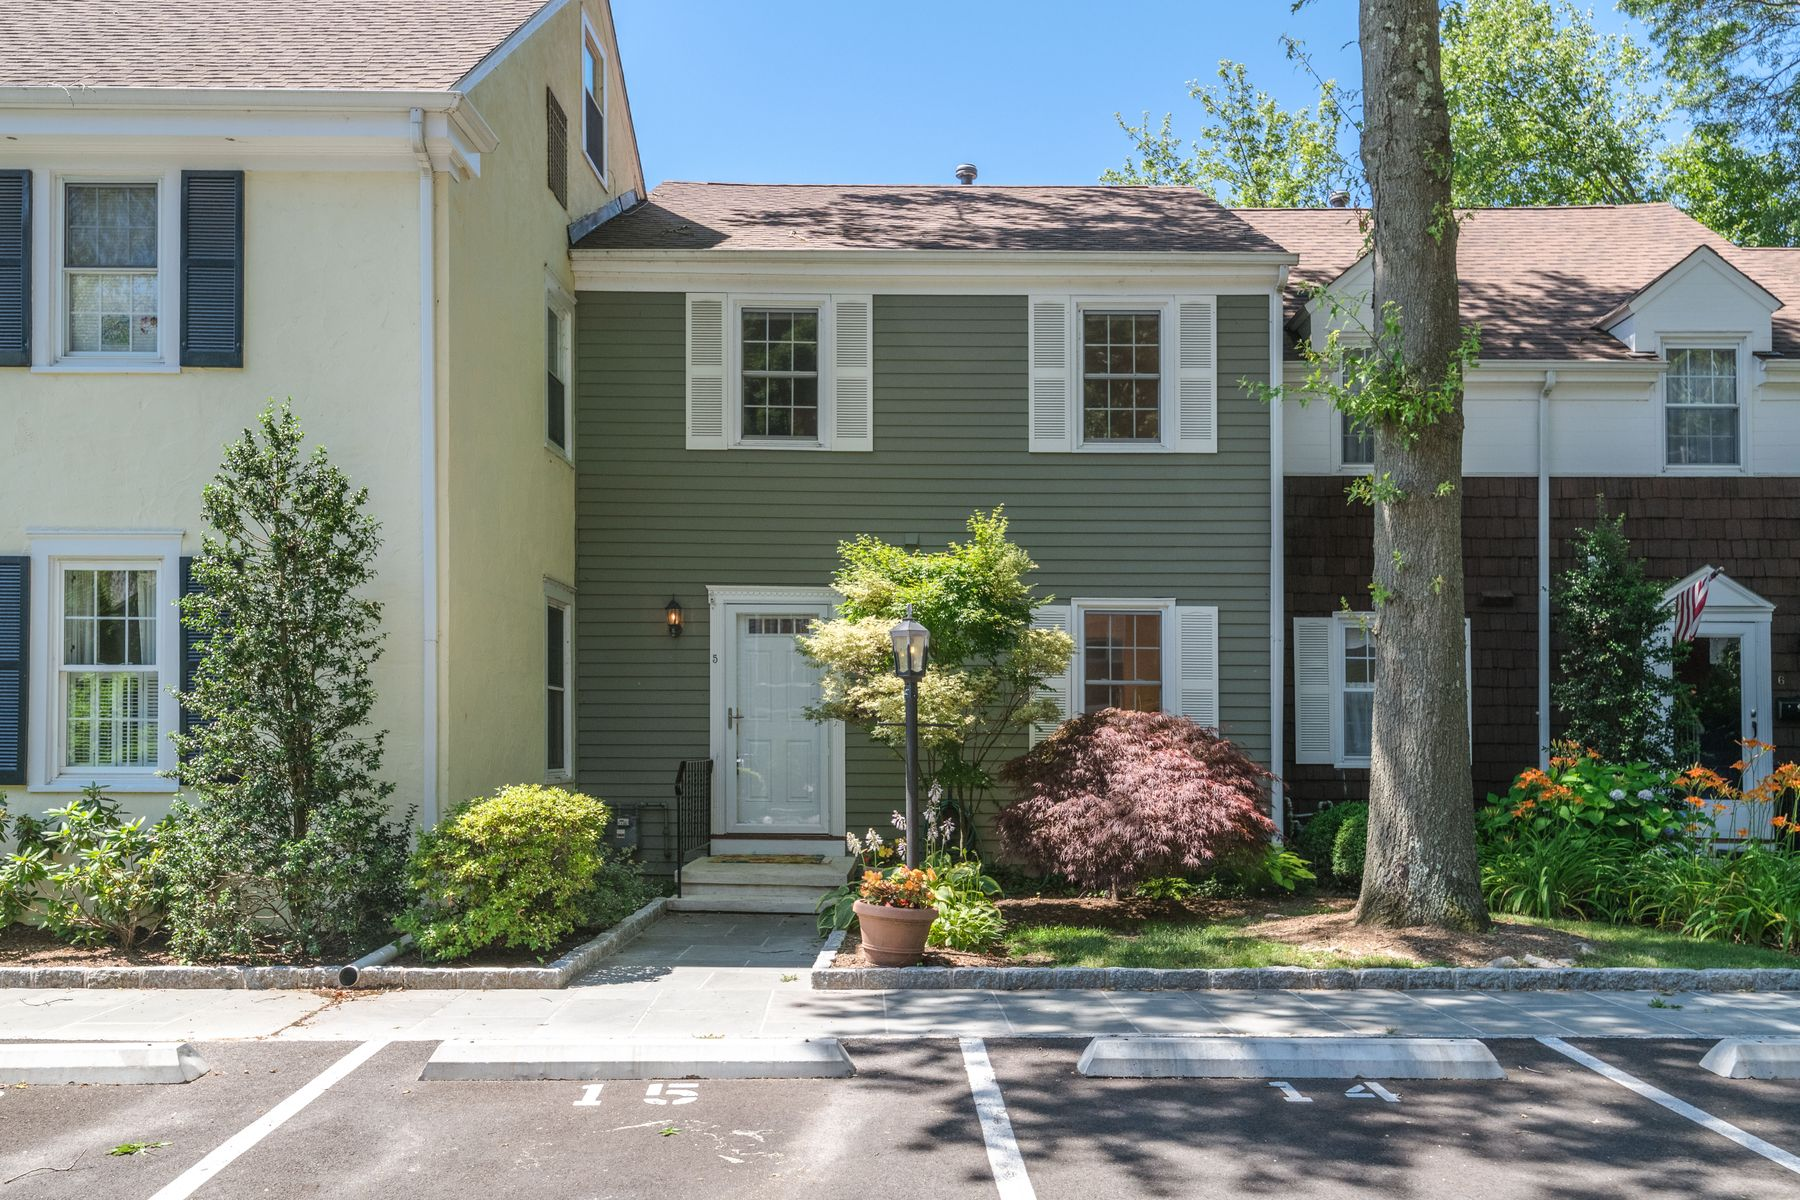 townhouses للـ Sale في Renovated To Perfection! 98 Valley Road Unit 5, Cos Cob, Connecticut 06807 United States